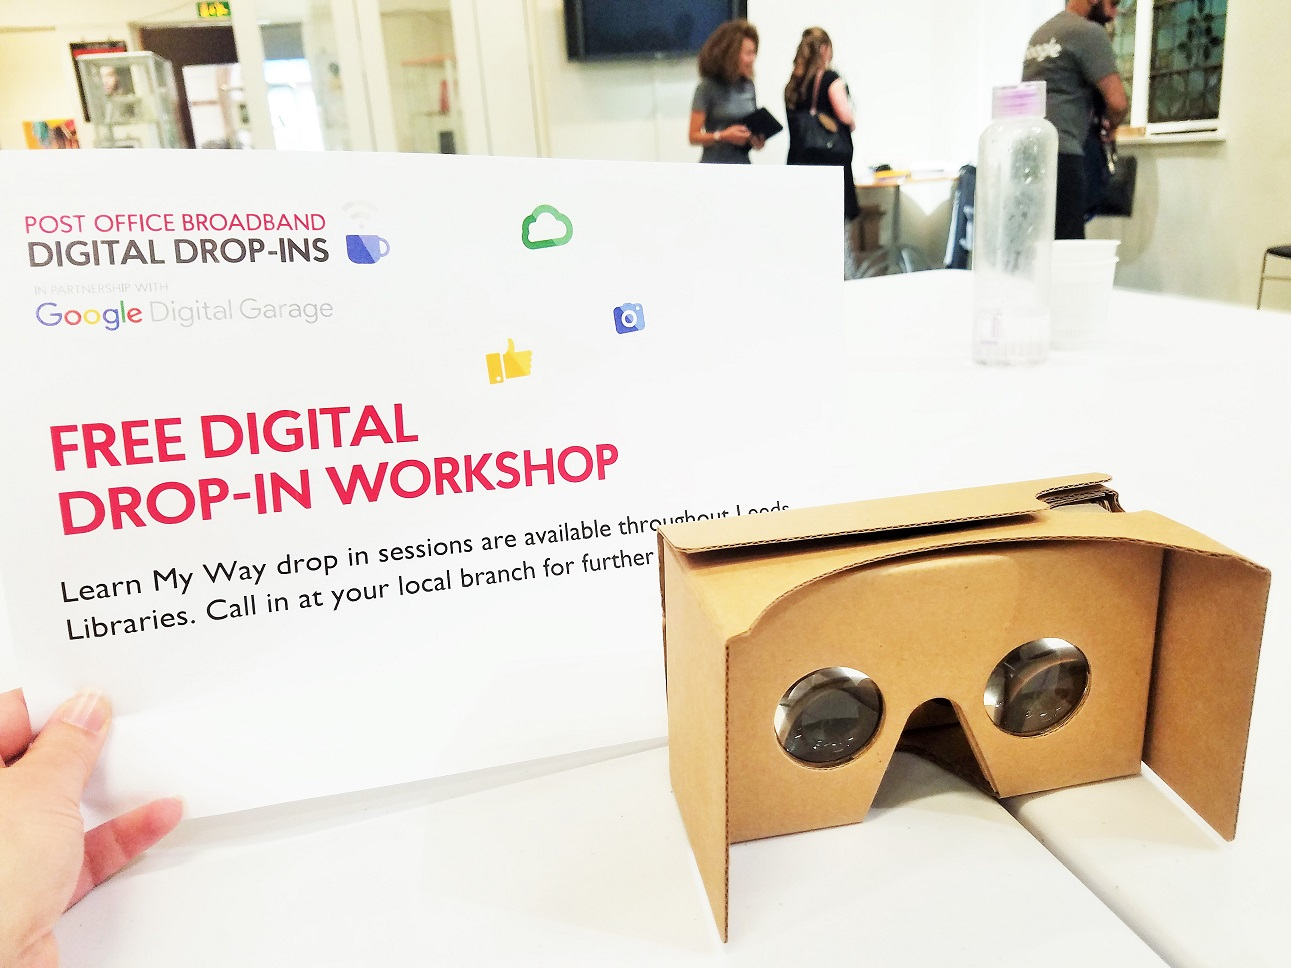 Digital Training - free drop-in workshop poster with Google Cardboard Virtual Reality Headset